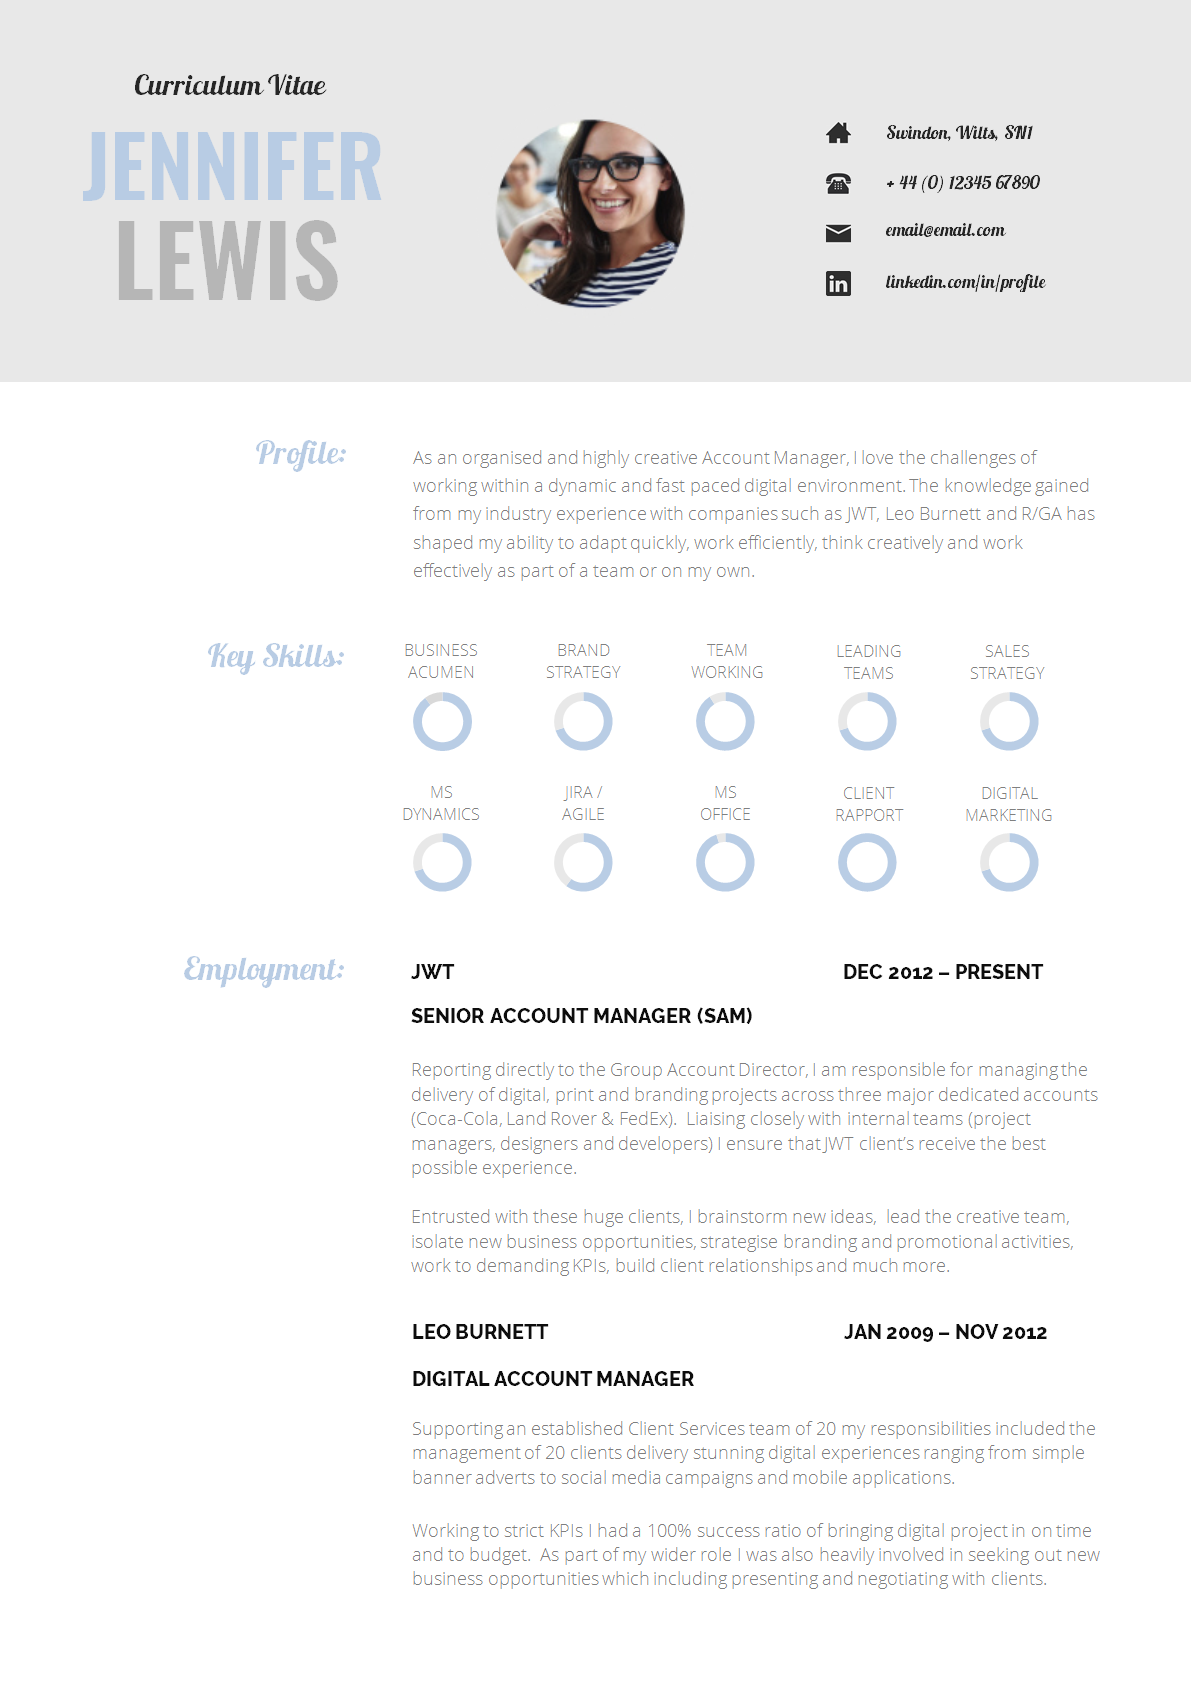 cv template download this resume template - Download Professional Cv Template